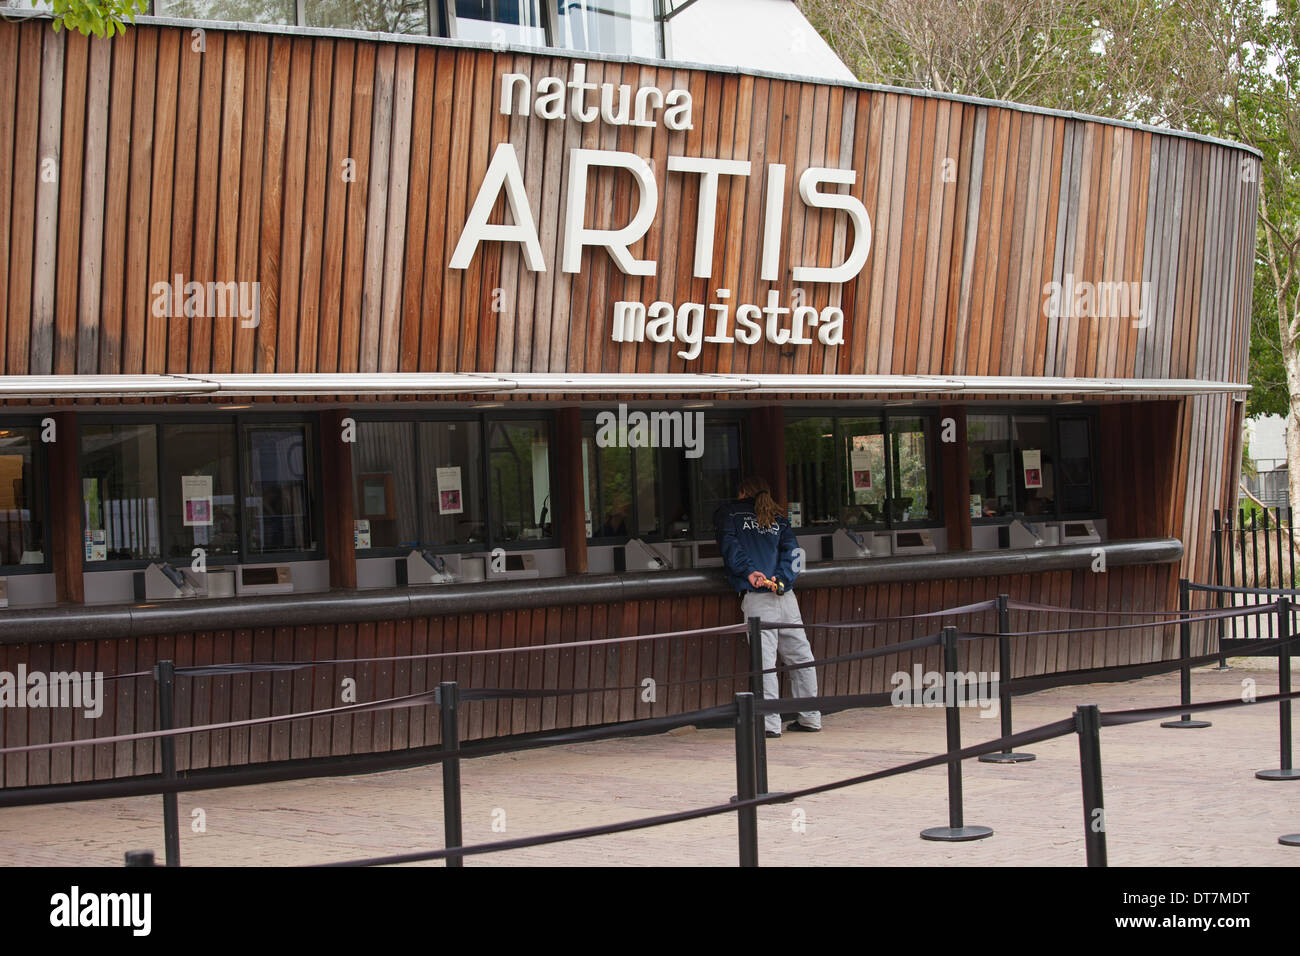 Artis Royal Zoo ticket counters in Amsterdam, Holland, Netherlands. - Stock Image